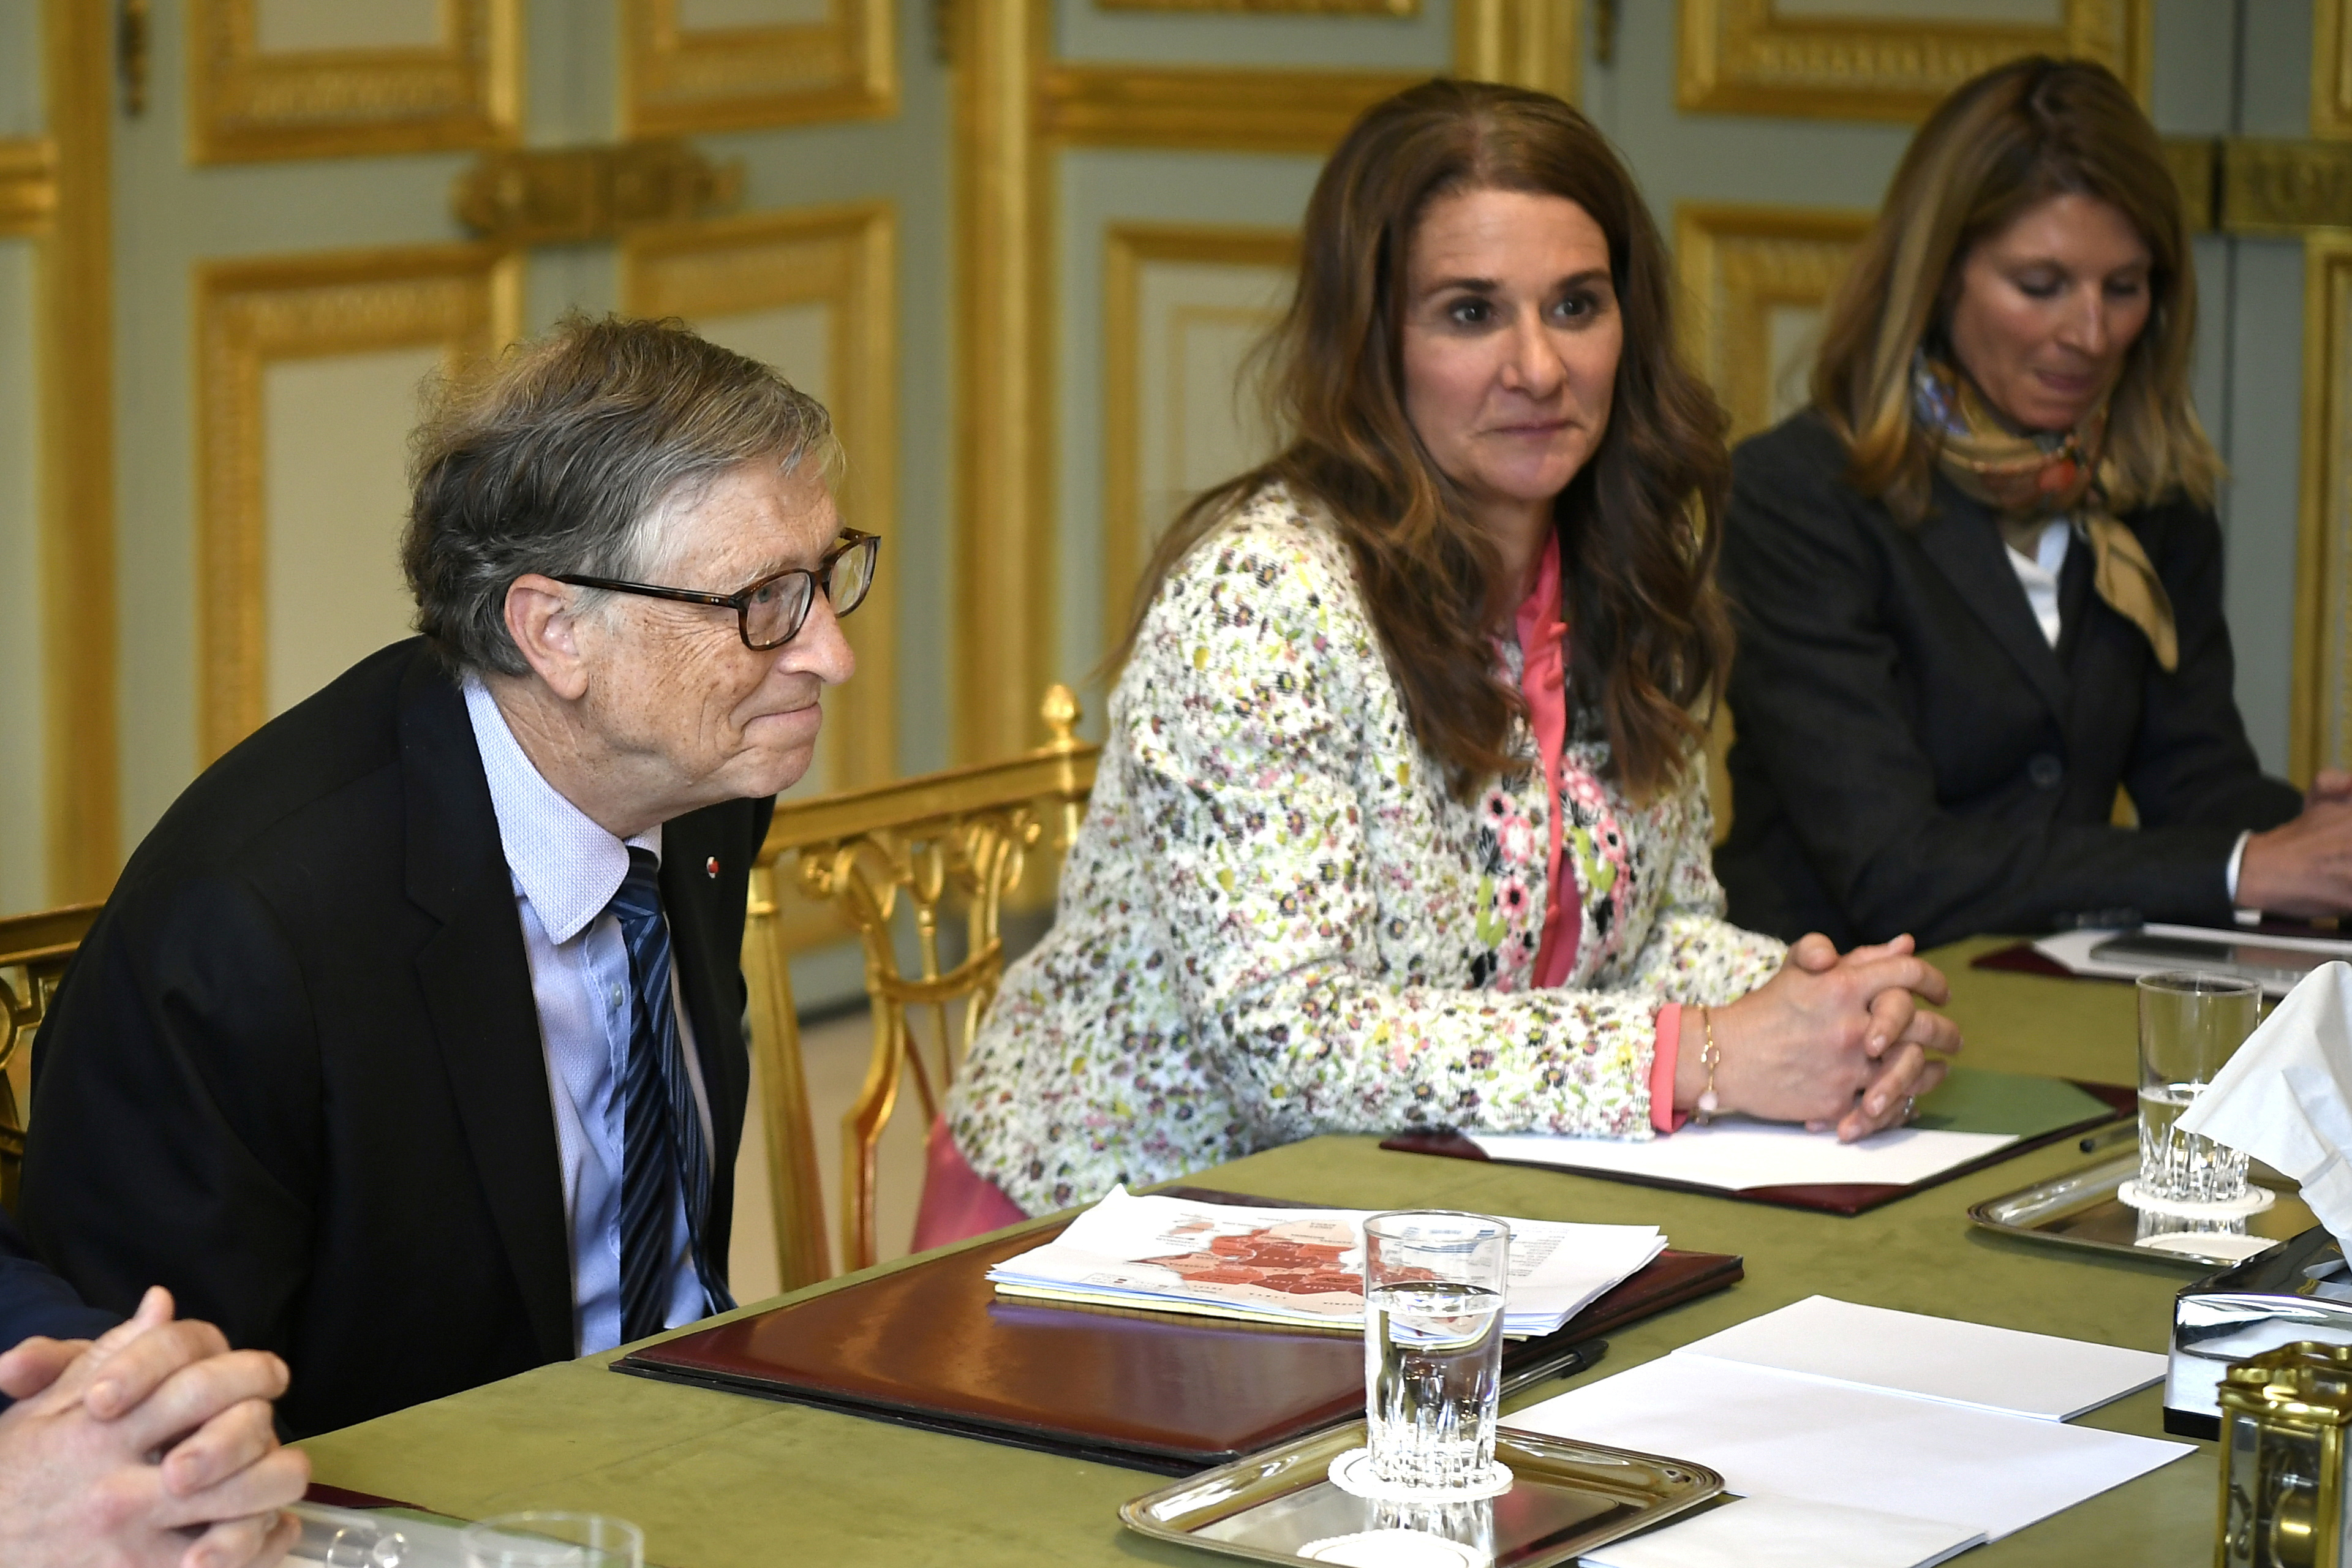 Microsoft founder and billionaire philanthropist Bill Gates (L) and his wife Melinda Gates (2ndR) attend a meeting with French President (unseen) at the Elysee Palace in Paris, France, April 16, 2018.   Lionel Bonaventure/Pool via Reuters/File Photo